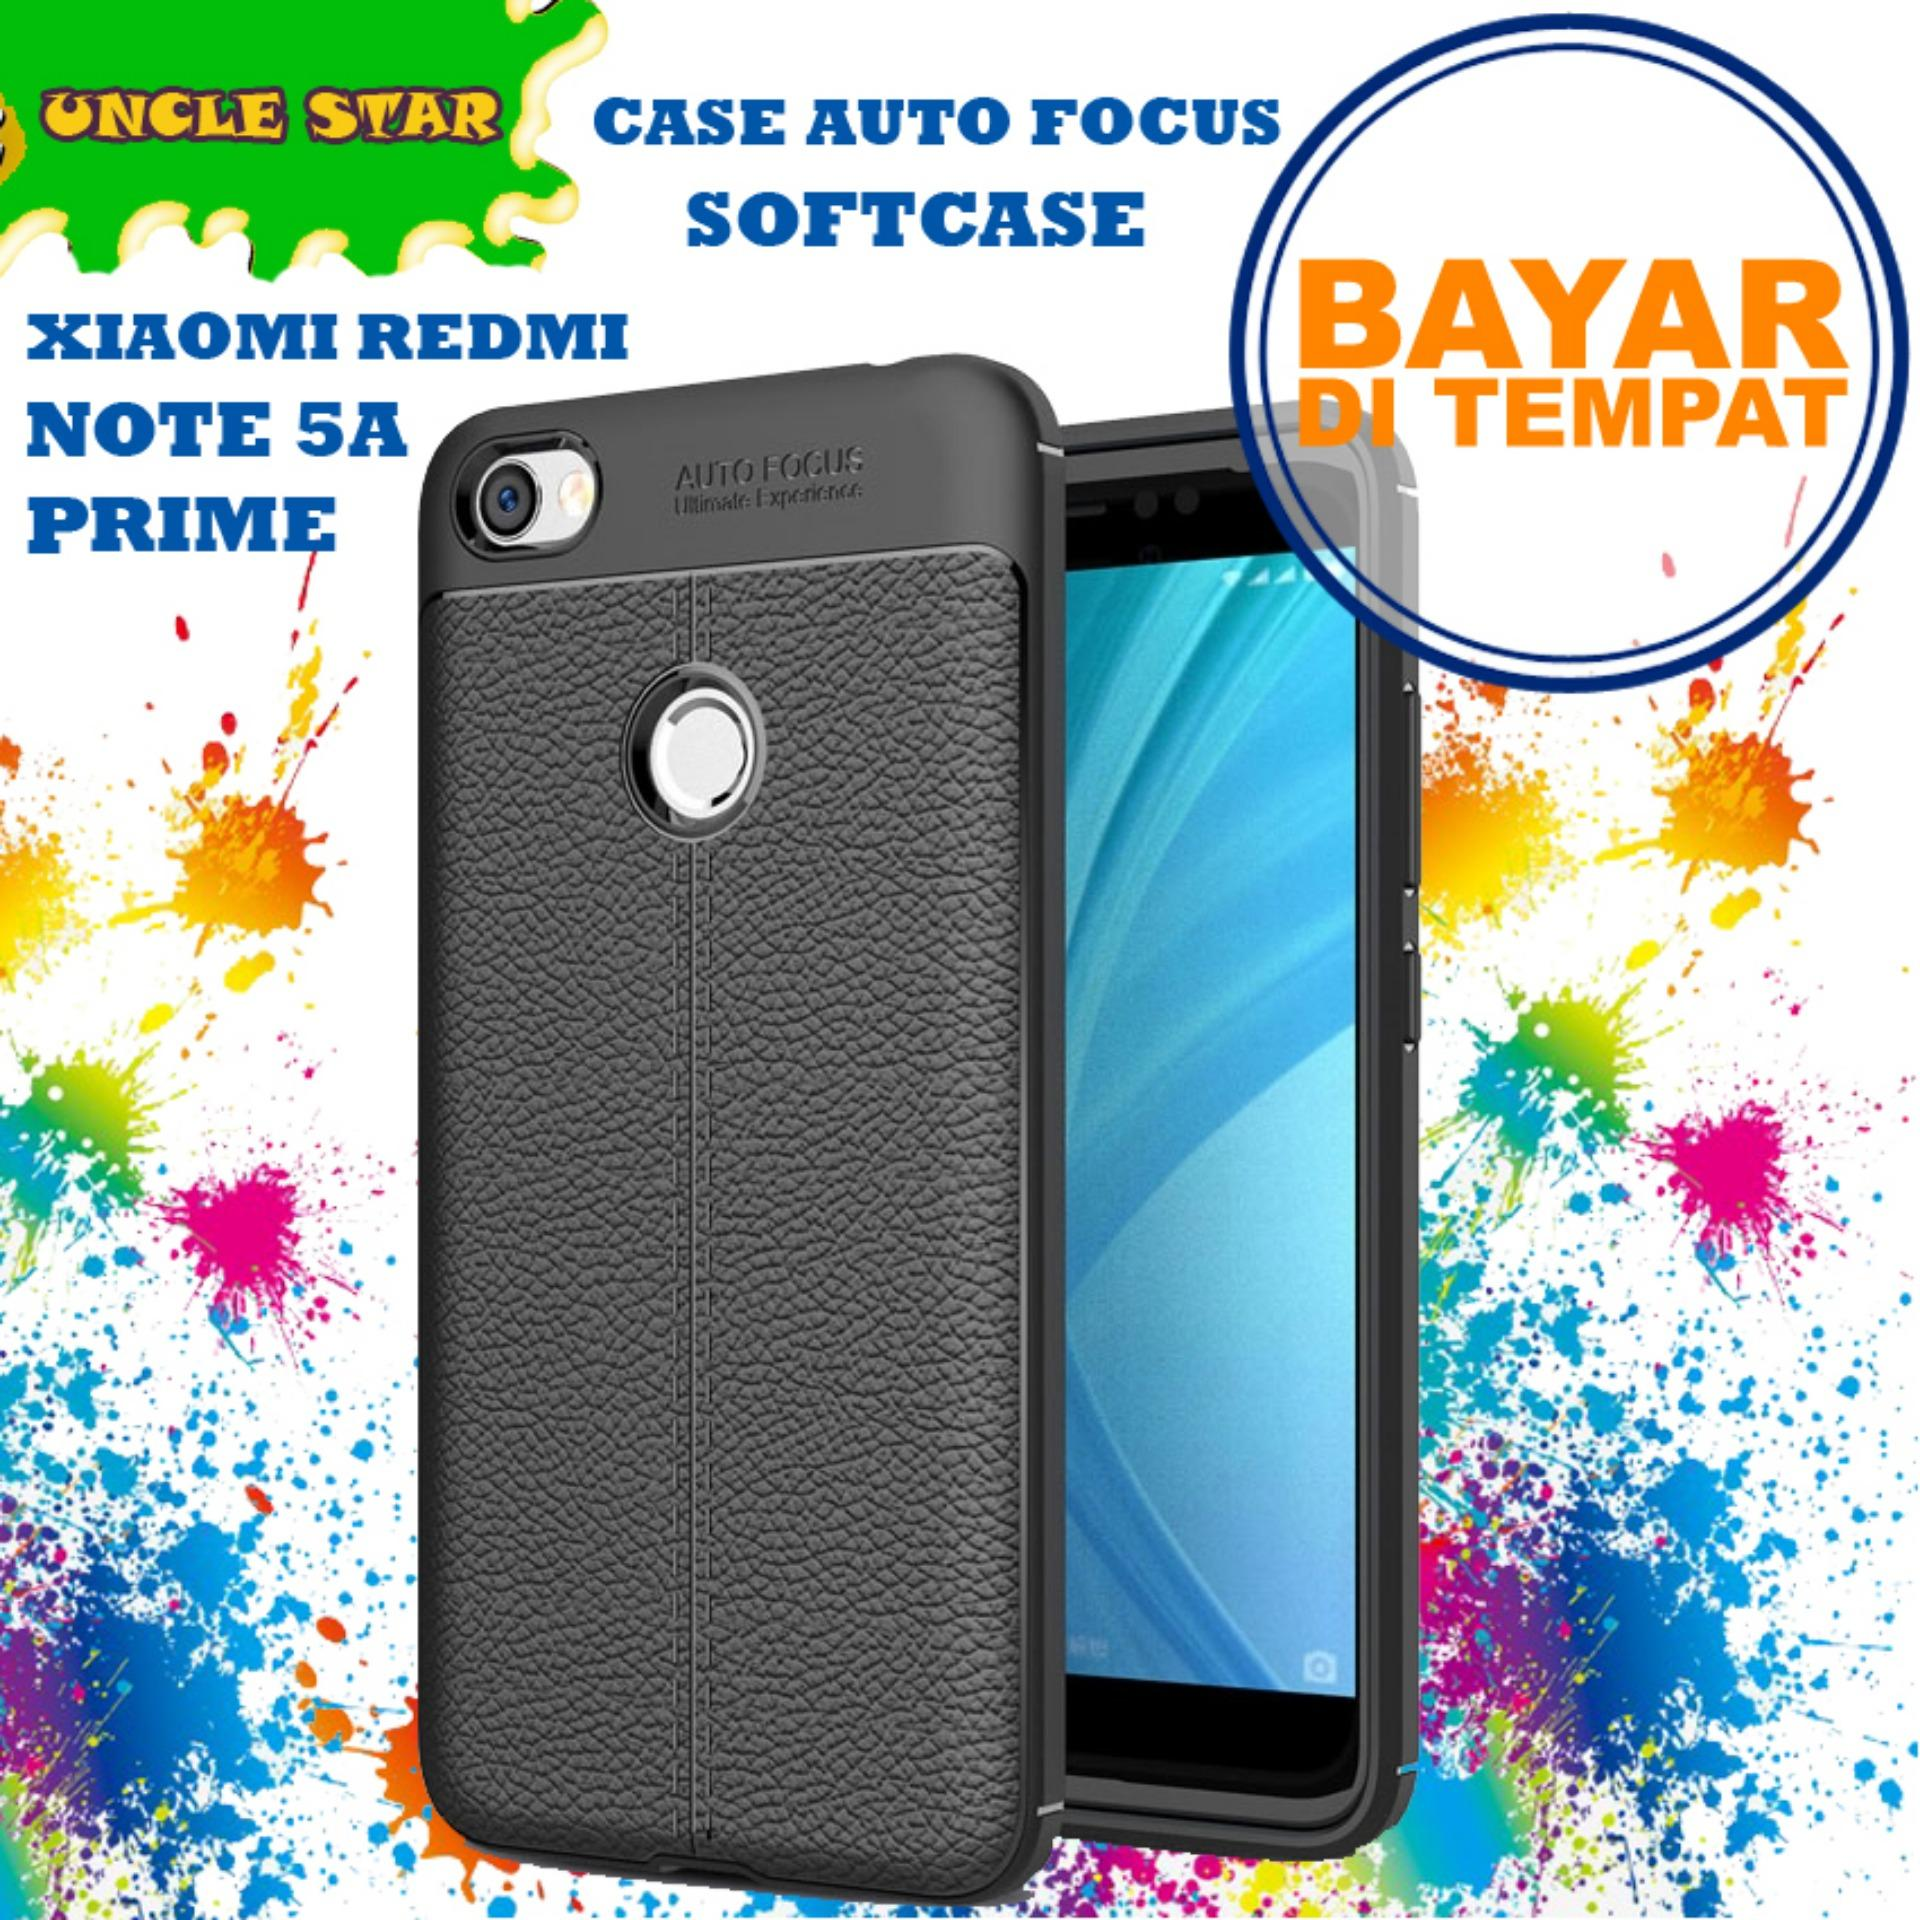 Uncle Star - Case Ipaky Auto Focus Elegant Case for Xiaomi Redmi Note 5a  Prime 9f19d1a179